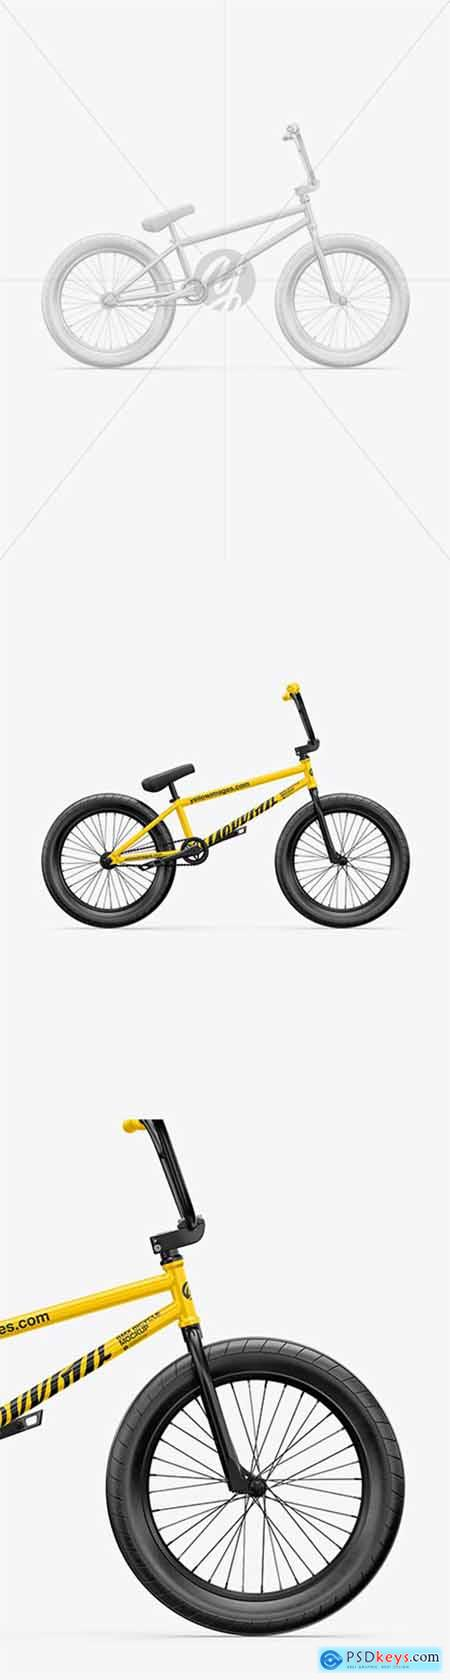 BMX Bicycle Mockup - Right Side View 64708